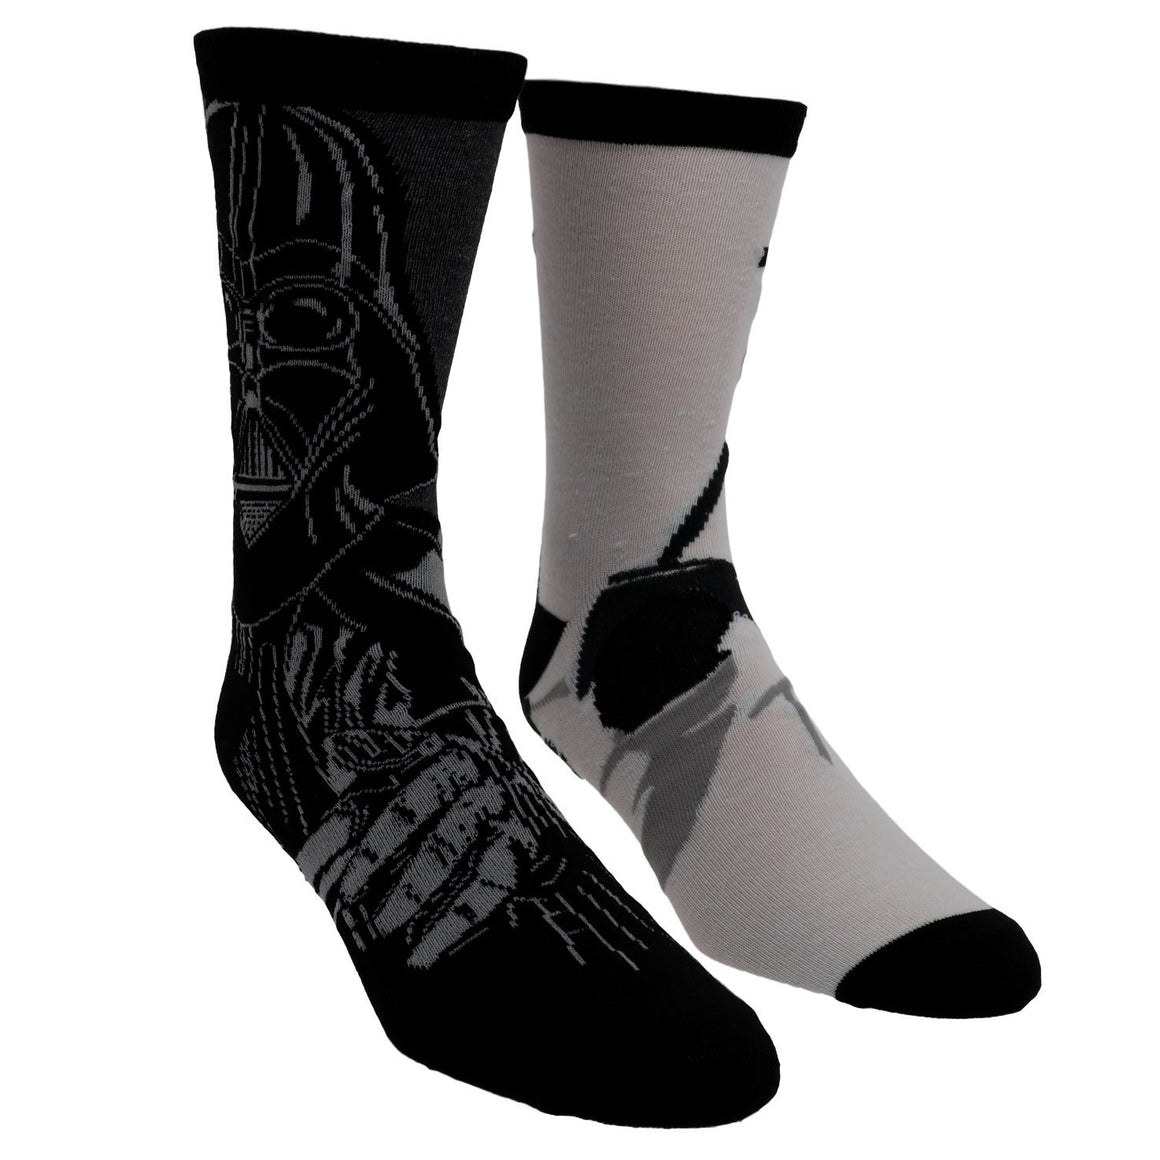 2 Pair Pack Star Wars Dark Side Socks - The Sock Spot